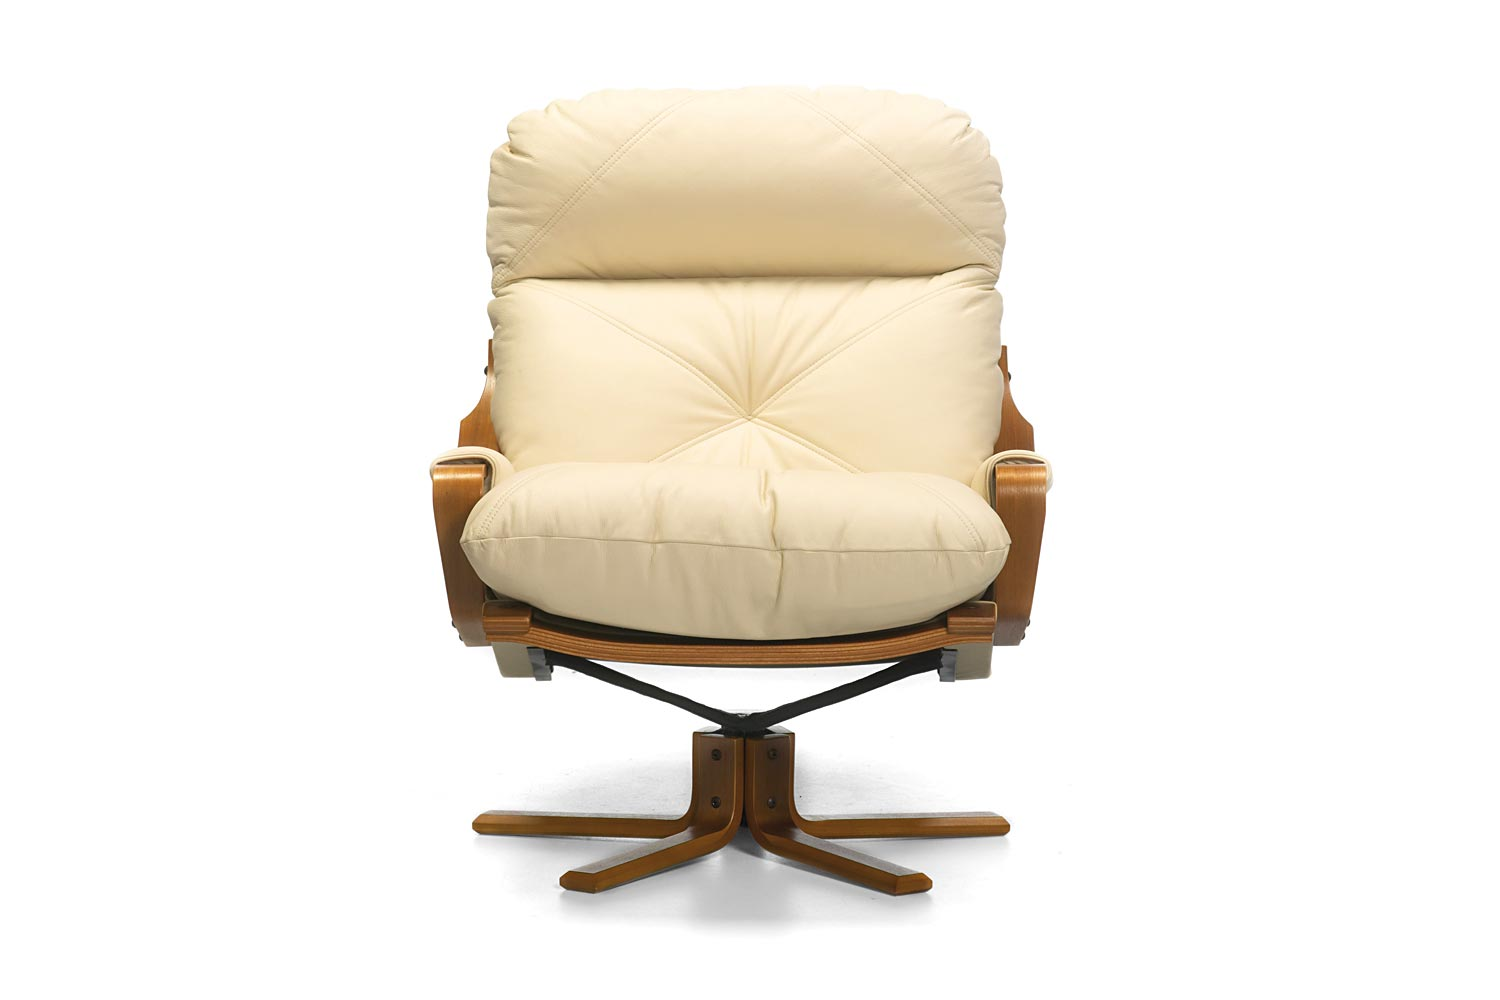 electric recliner chair covers australia rooster cushions contempo swivel tessa furniture